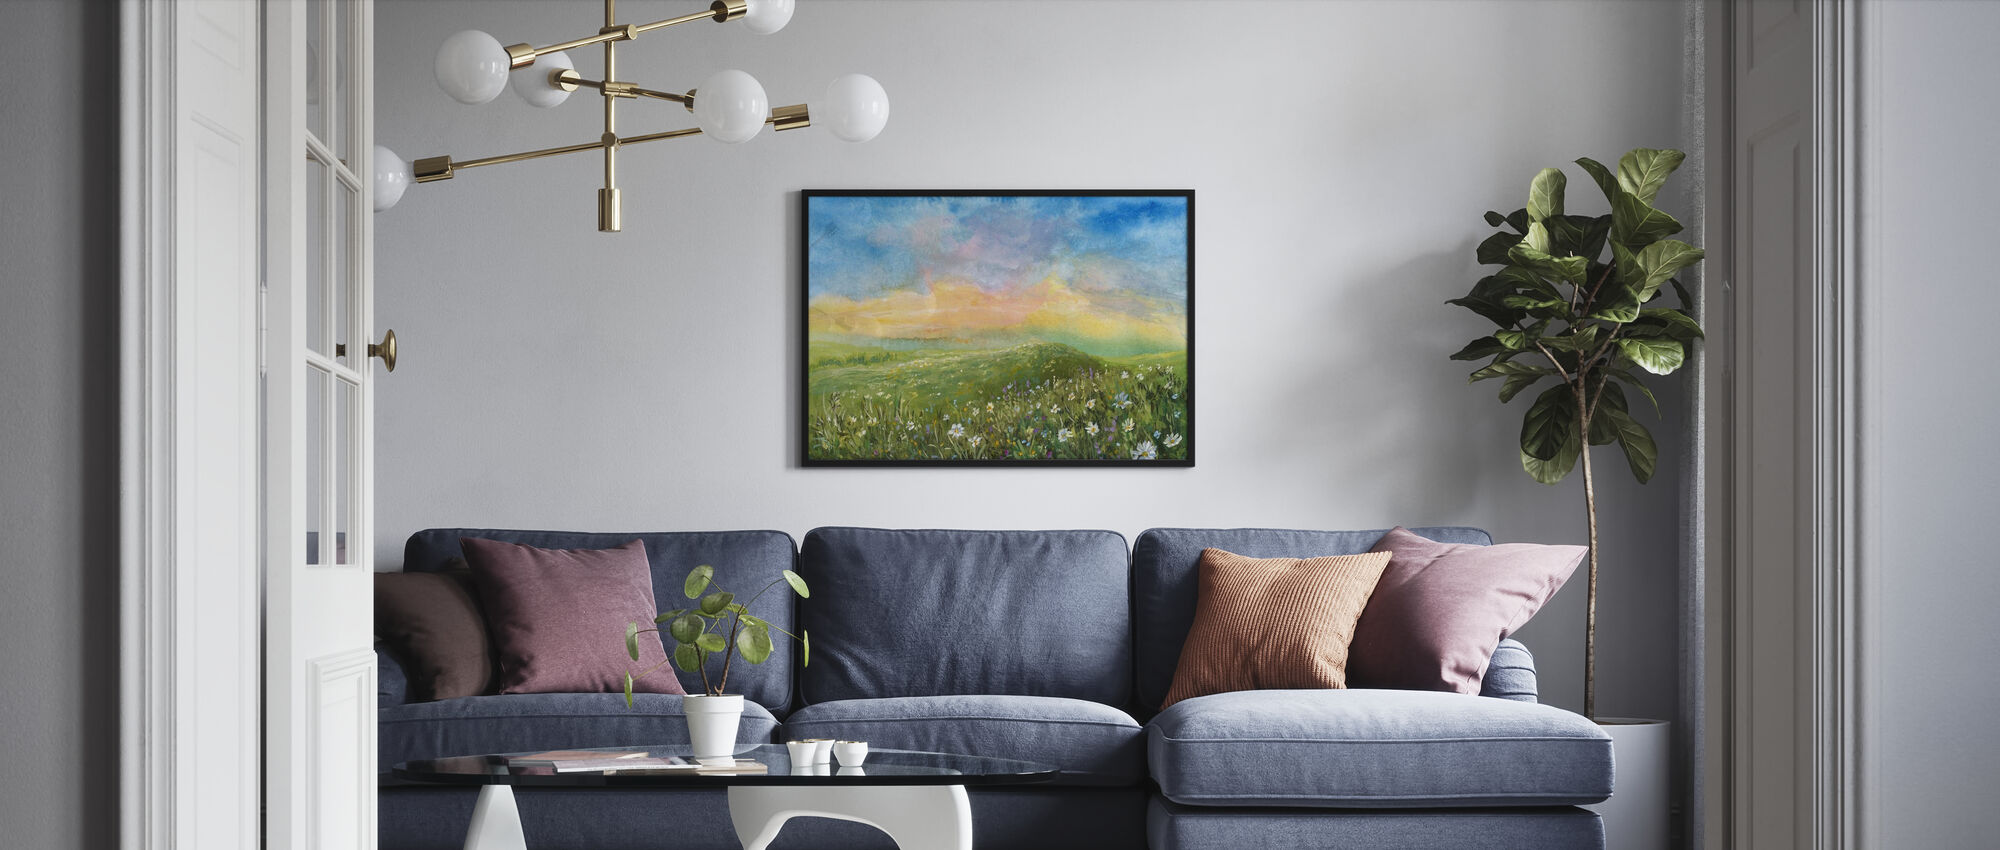 Watercolor Blooming Valley - Poster - Living Room